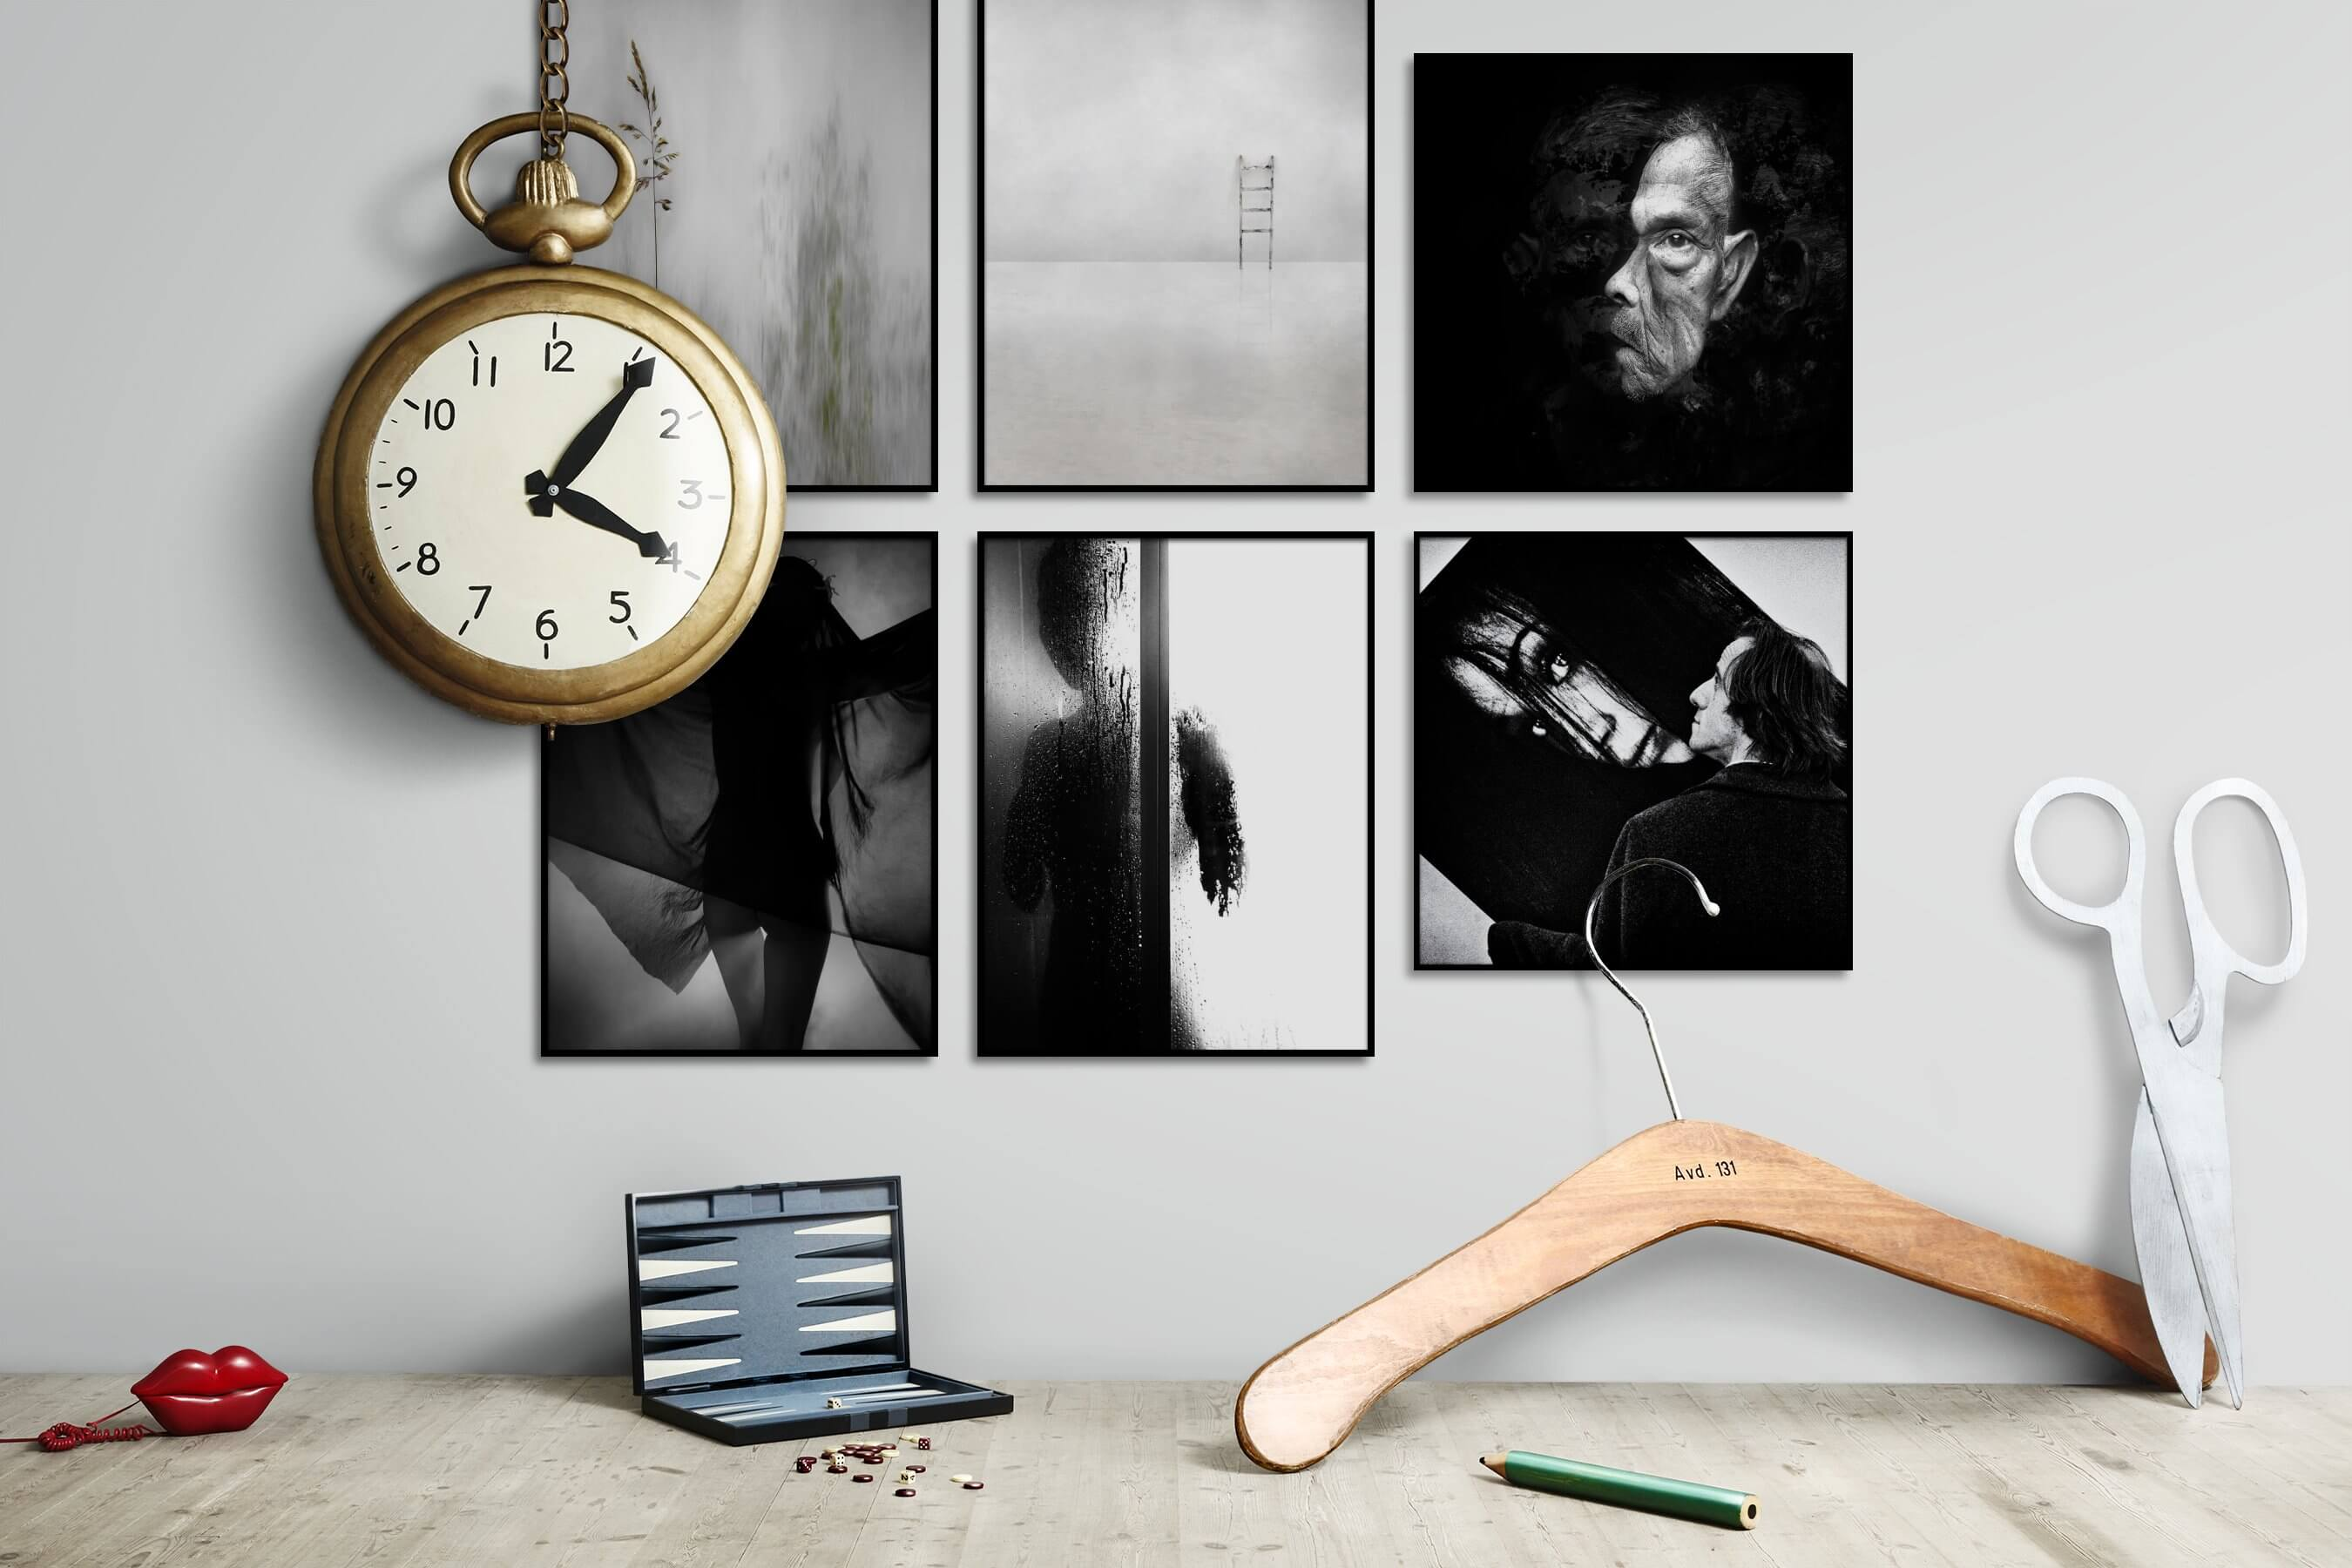 Gallery wall idea with six framed pictures arranged on a wall depicting For the Minimalist, Flowers & Plants, Fashion & Beauty, Black & White, Artsy, Dark Tones, and For the Moderate